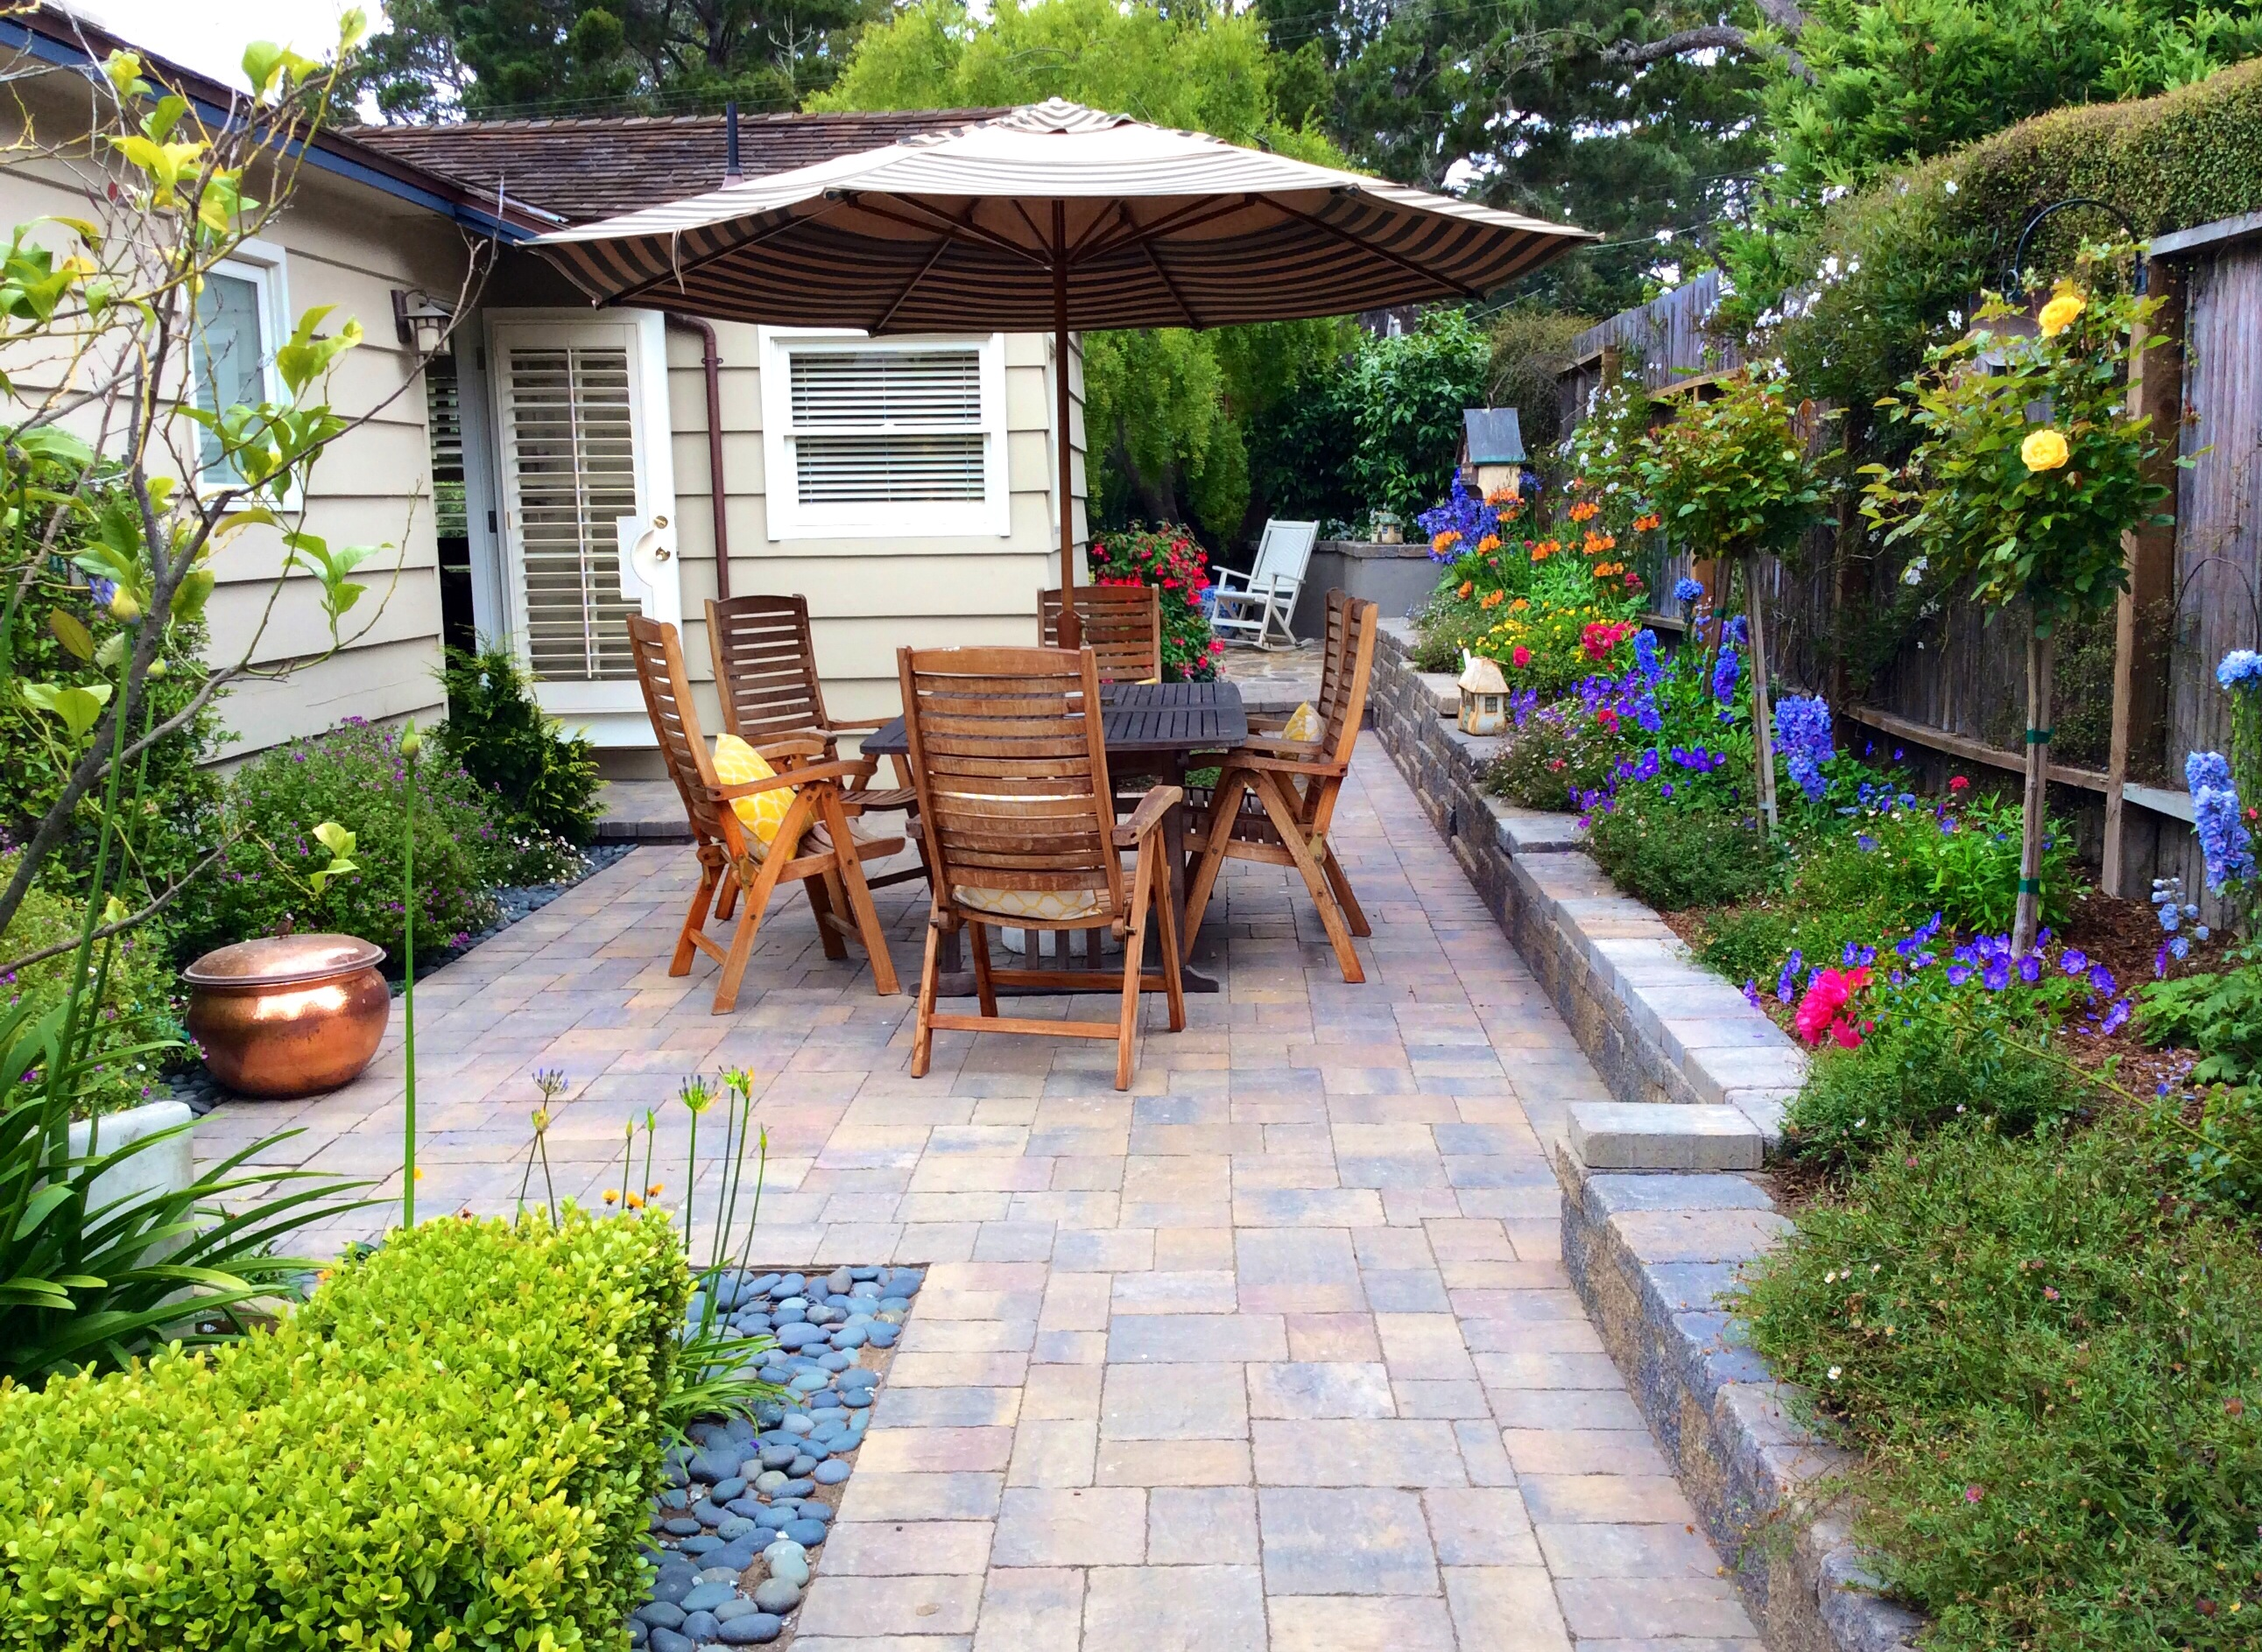 100 Slate Patio Pavers Lovely 1920s Painted Floor